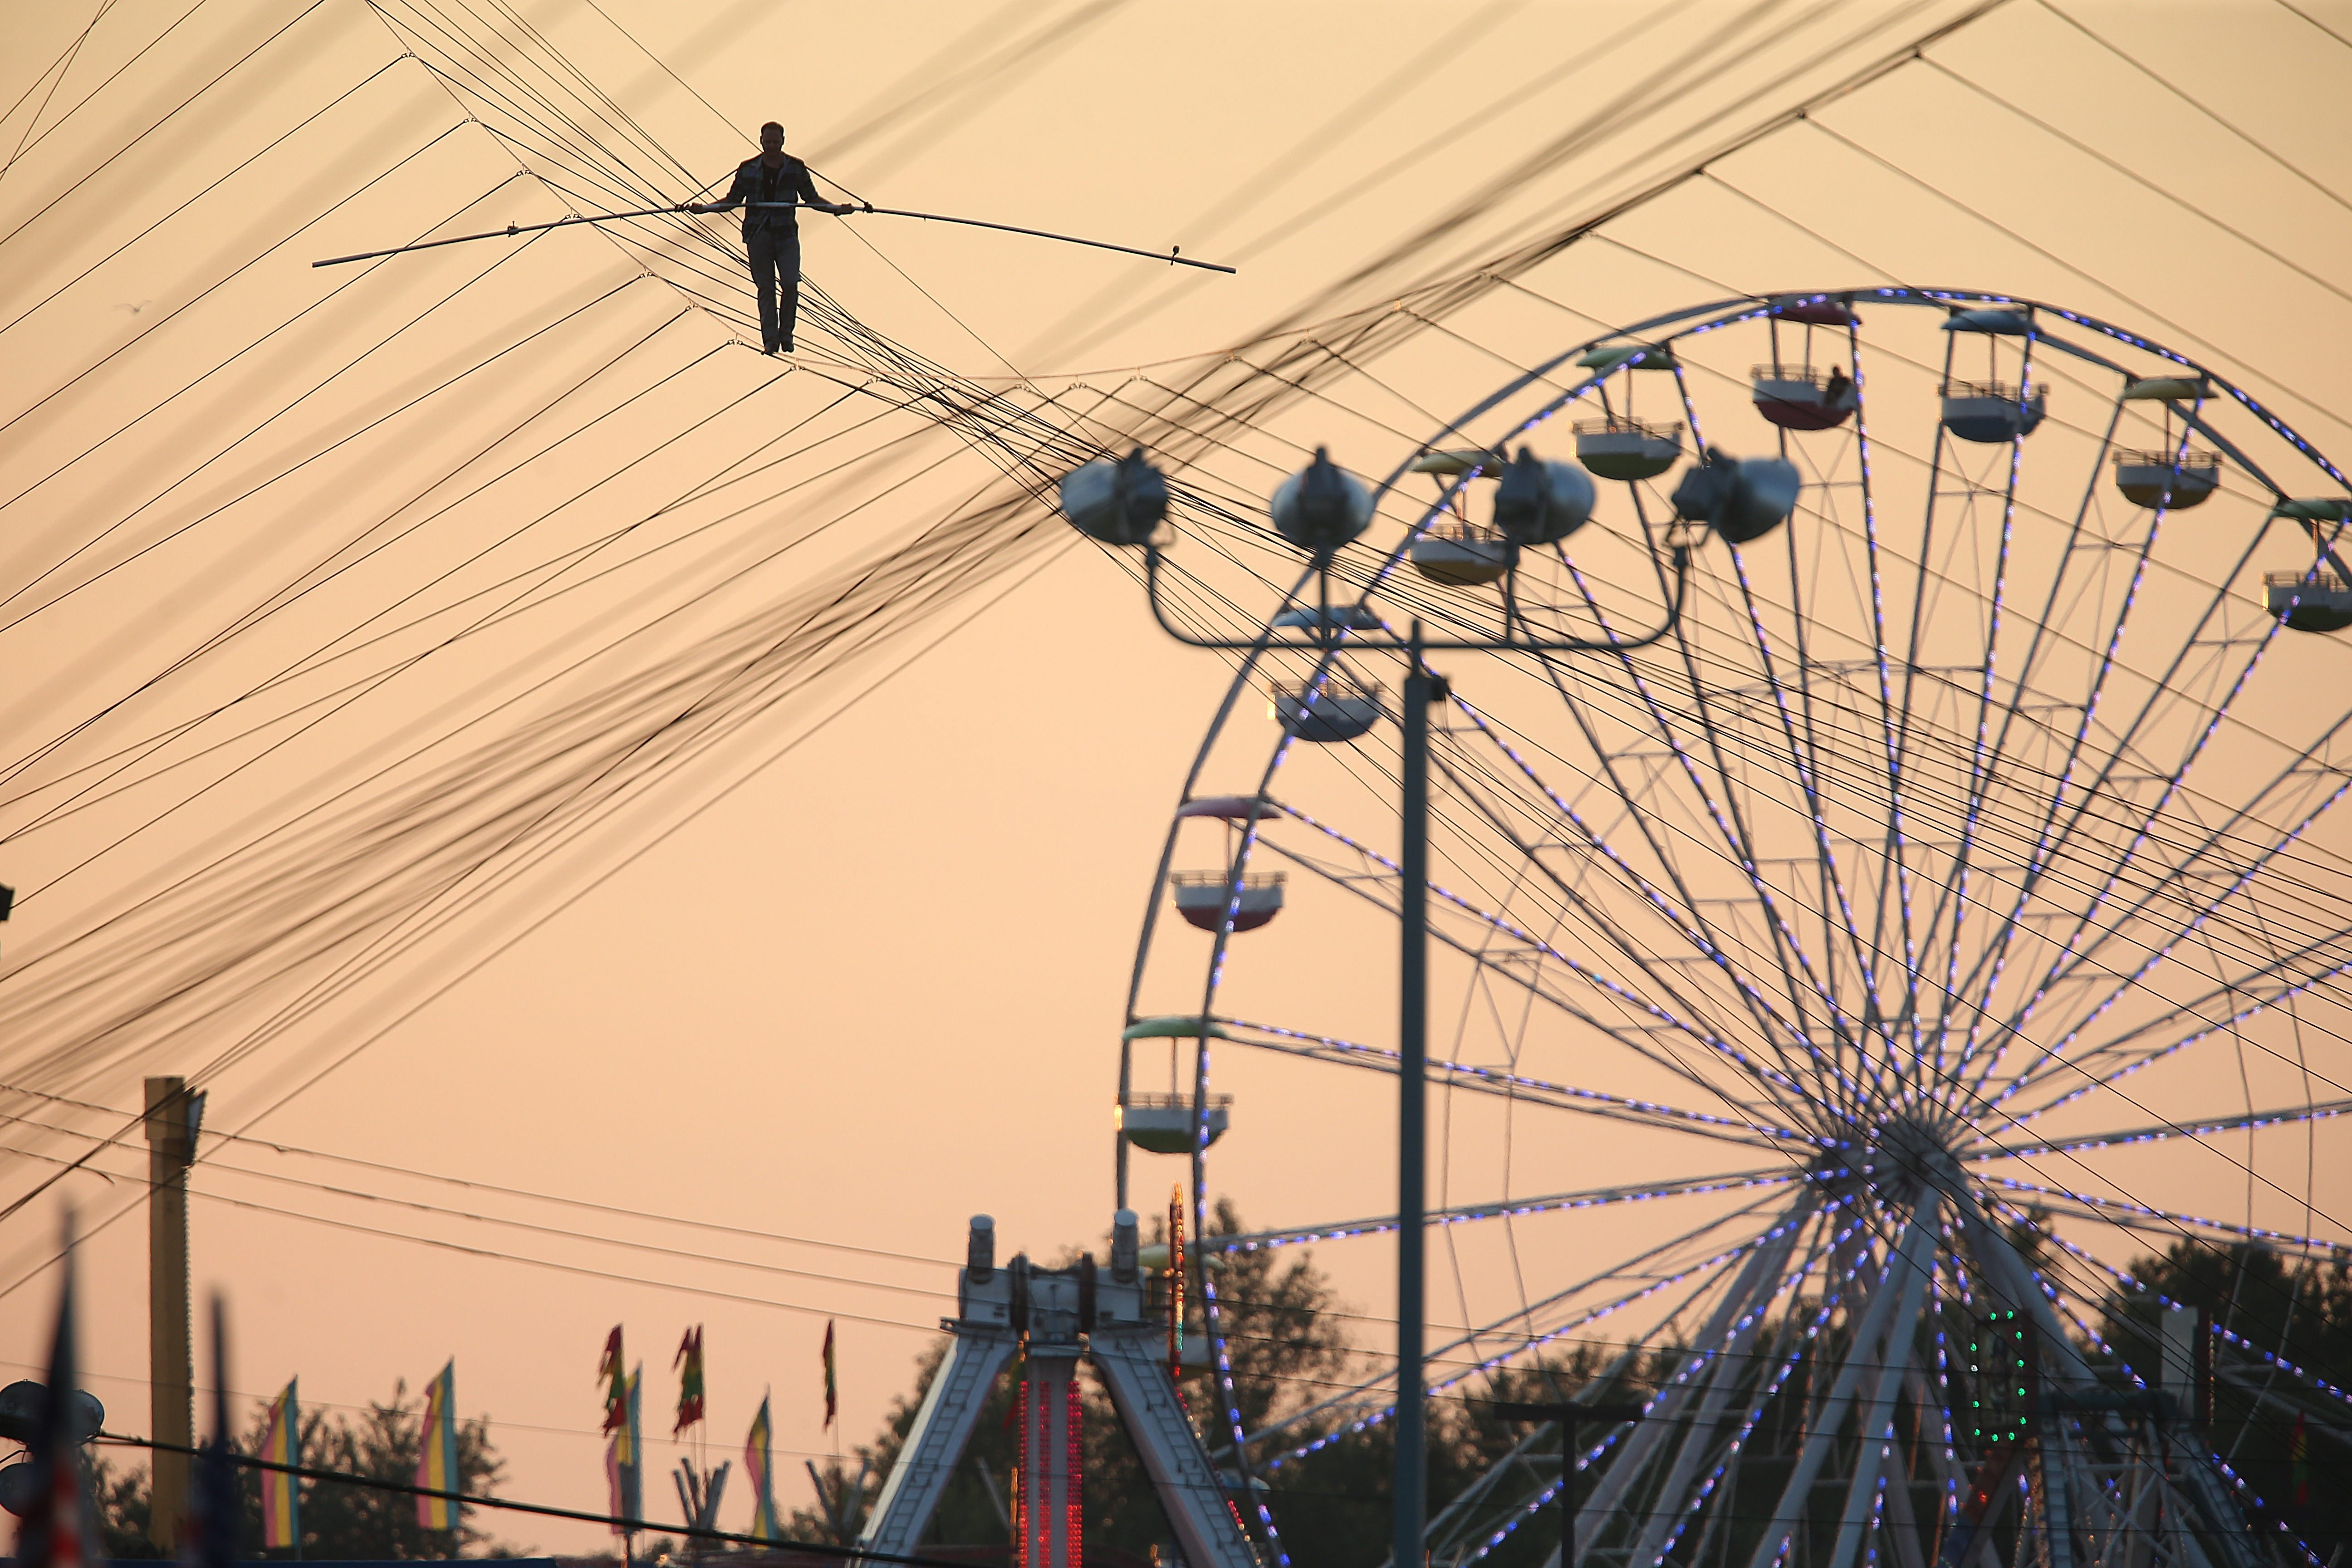 Nik Wallenda walks on the high wire at the Erie County Fair in Hamburg, Sunday, August 10, 2014. {Photo by Charles Lewis/Buffalo News}